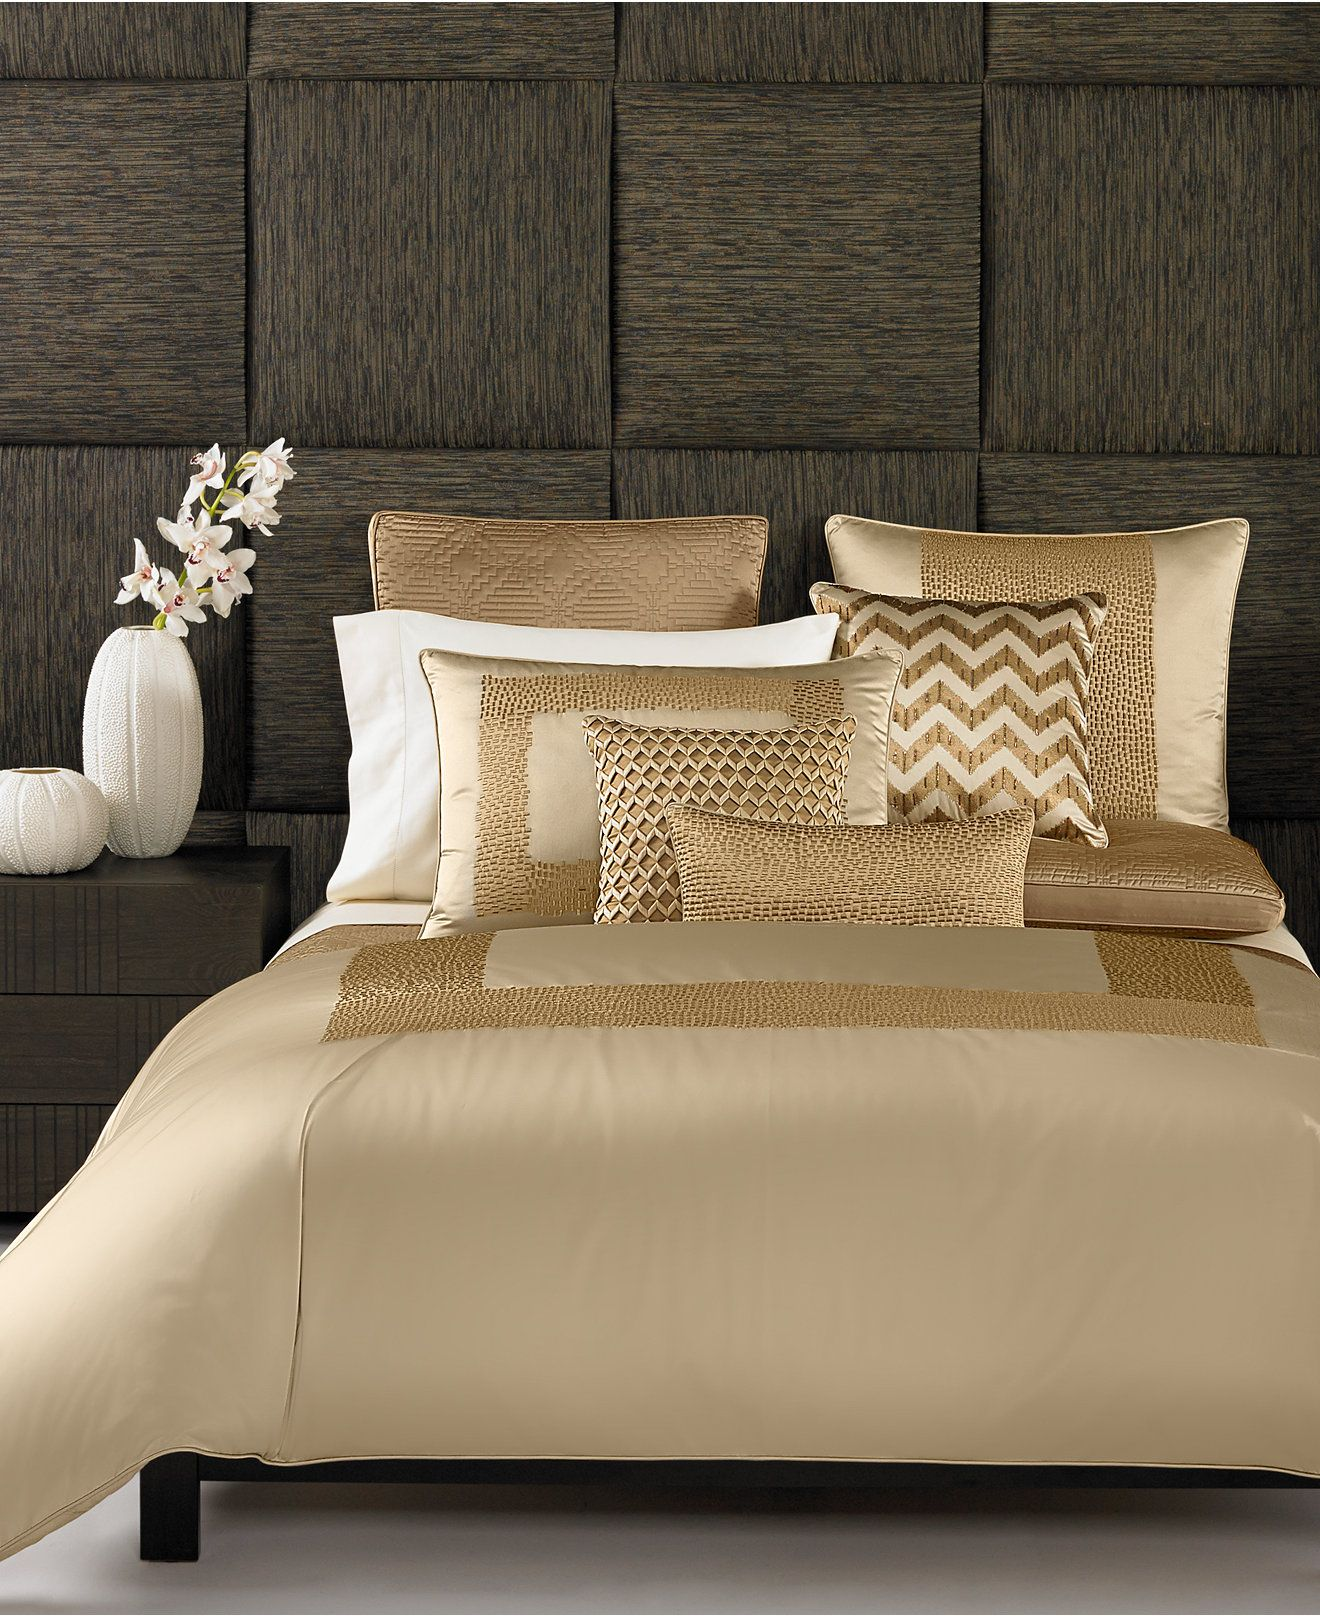 Hotel Collection Mosaic Bedding - Collections Bed & Bath Macy' Bedroom